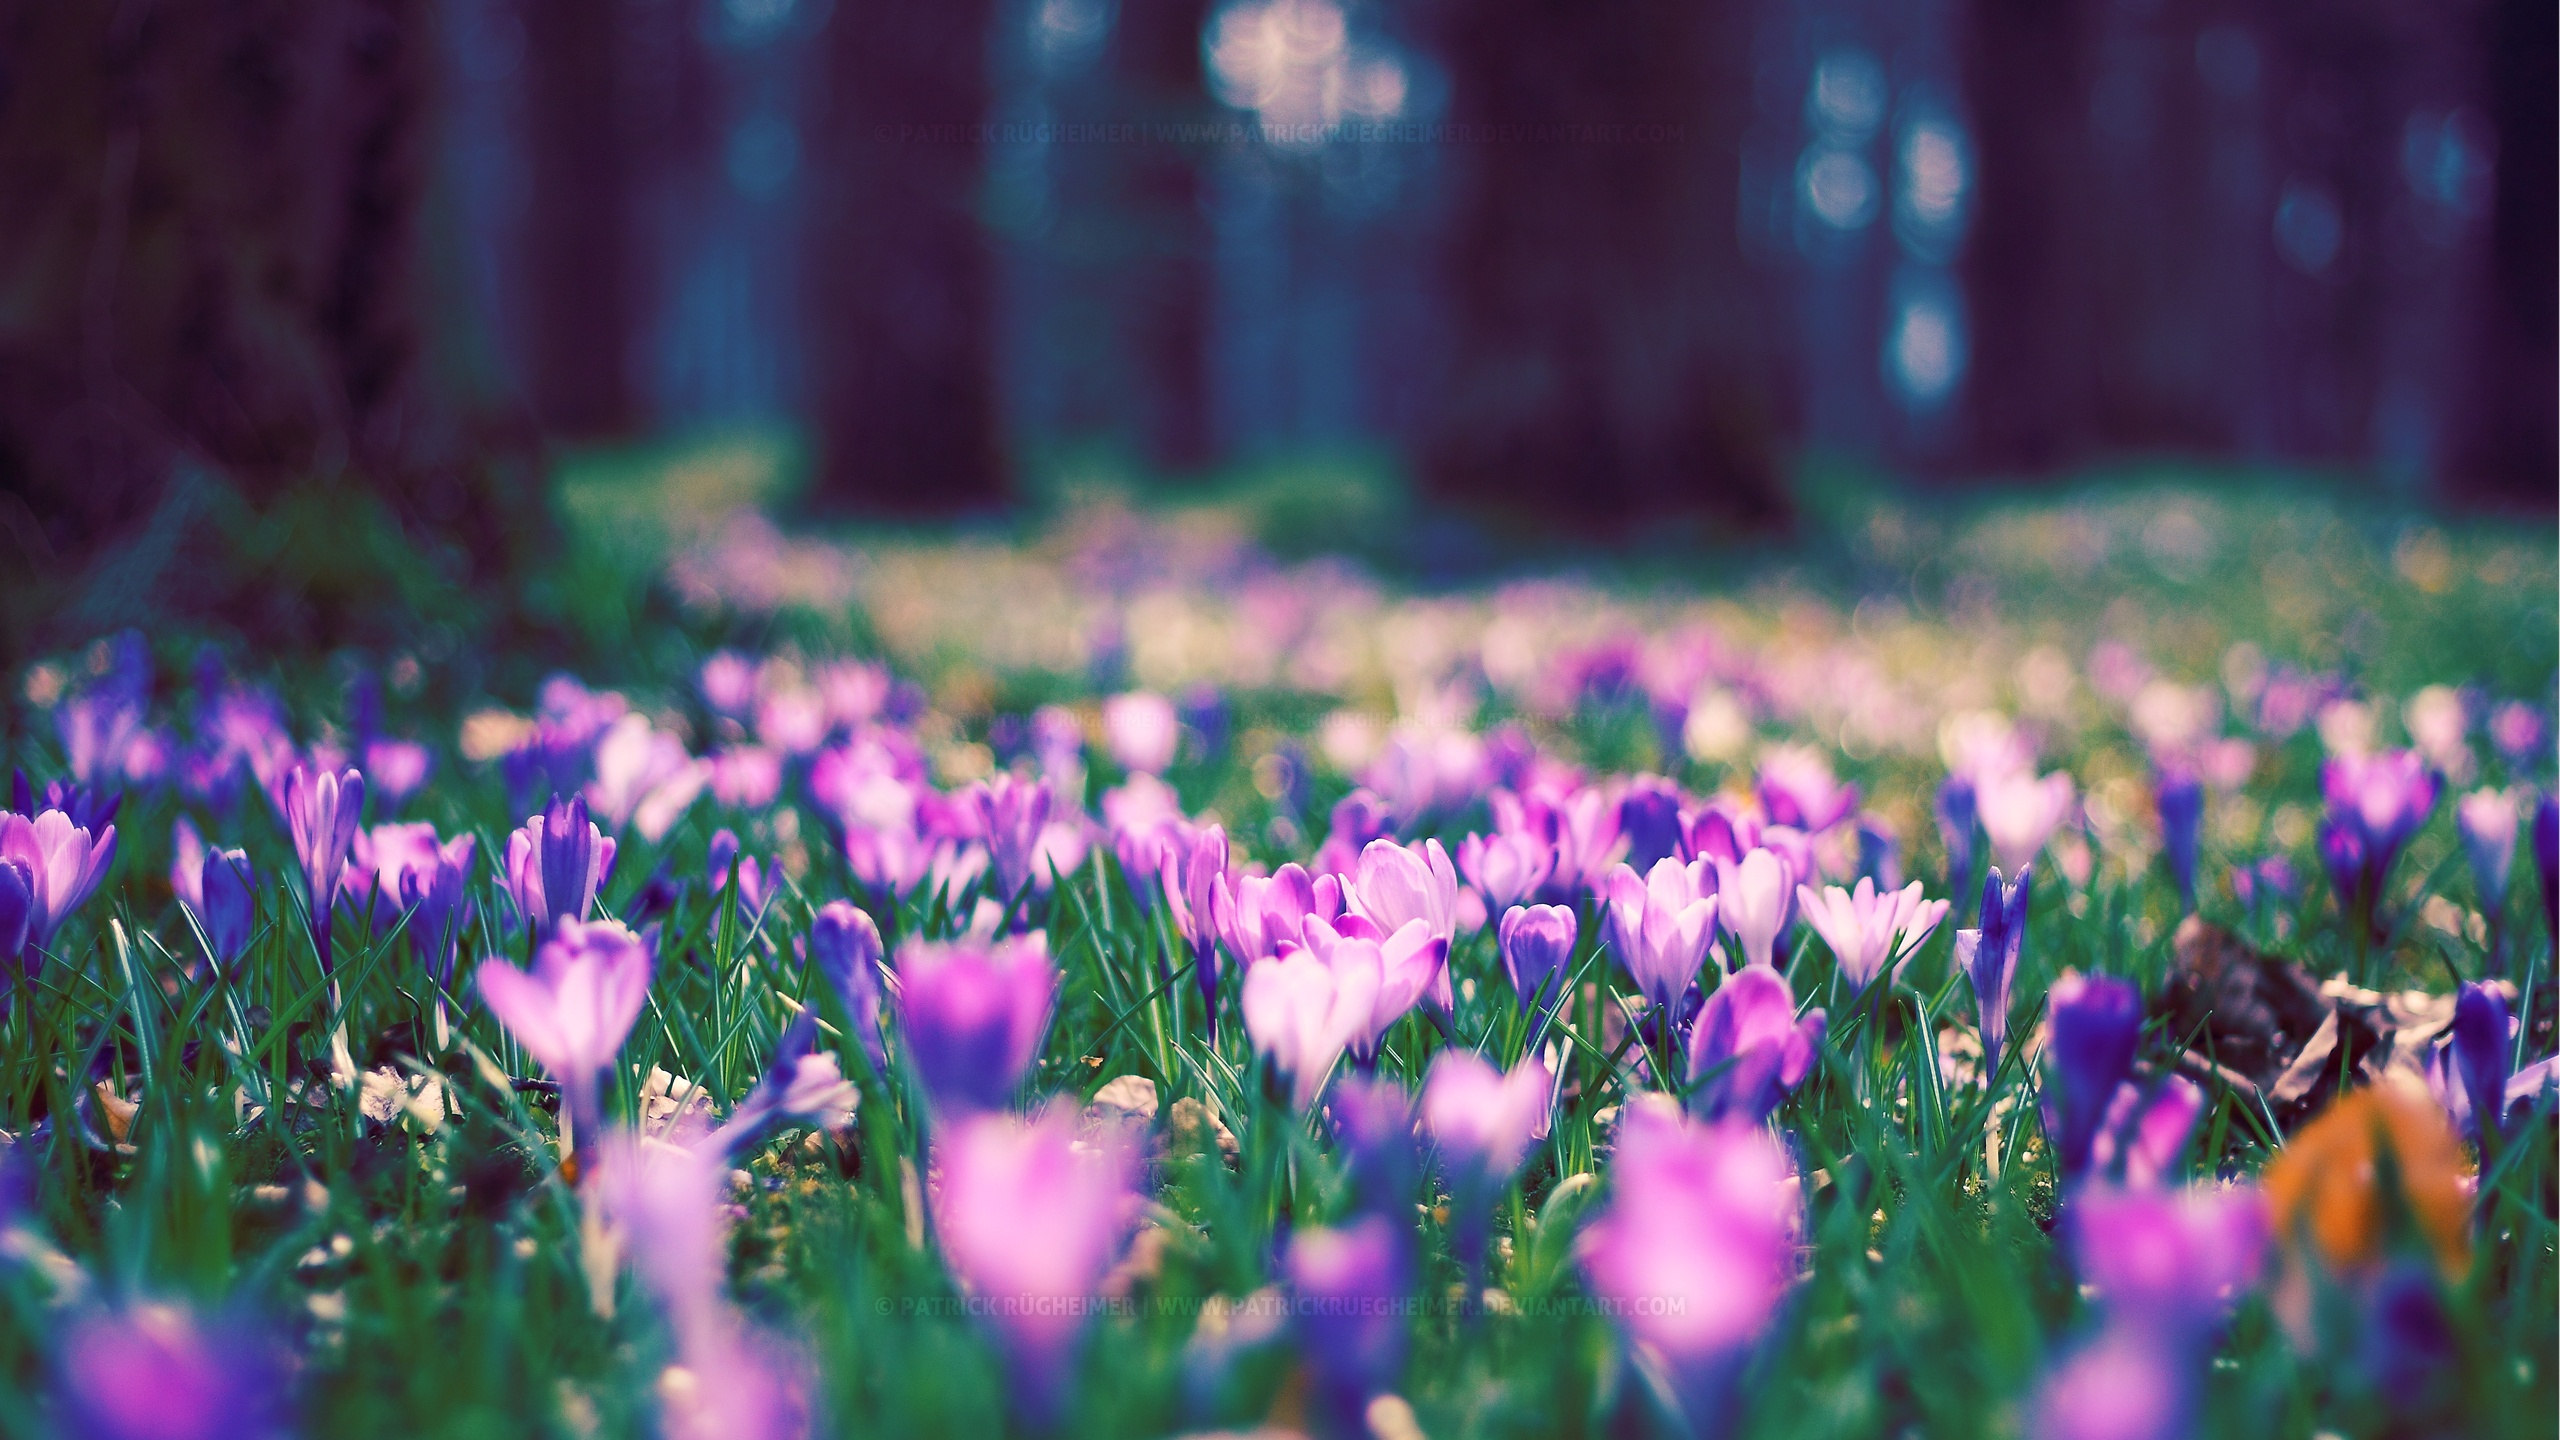 Spring flower pictures download picture free Spring flowers wallpaper nature wallpapers for free download about ... picture free